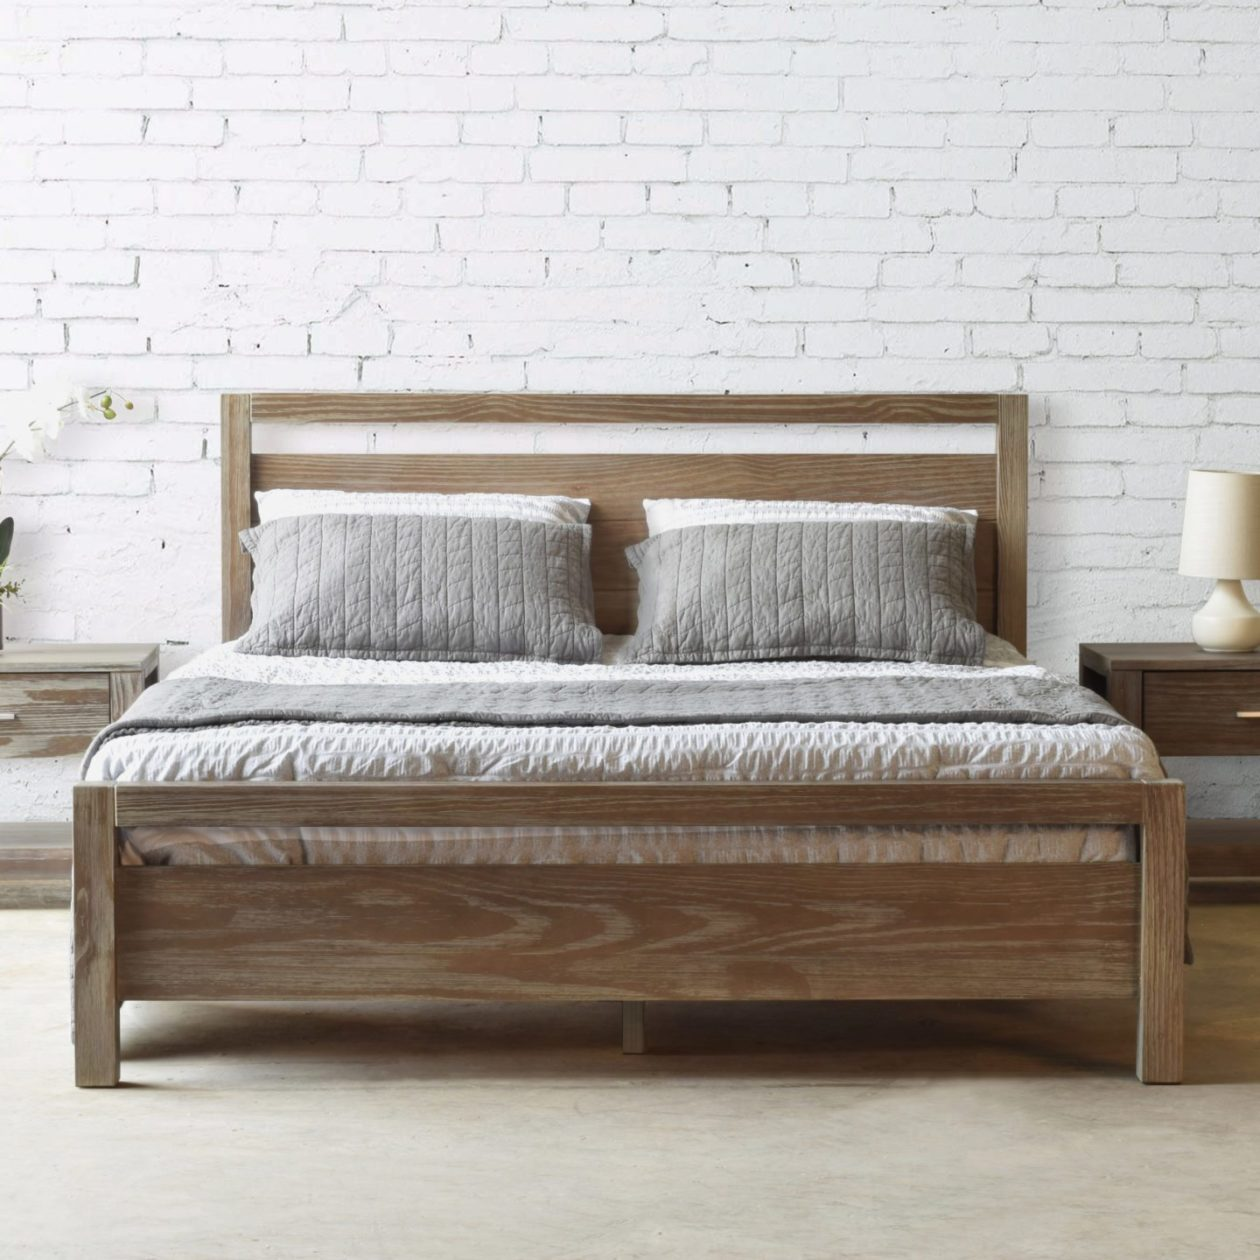 find the perfect bed frame for your master bedroom - overstock